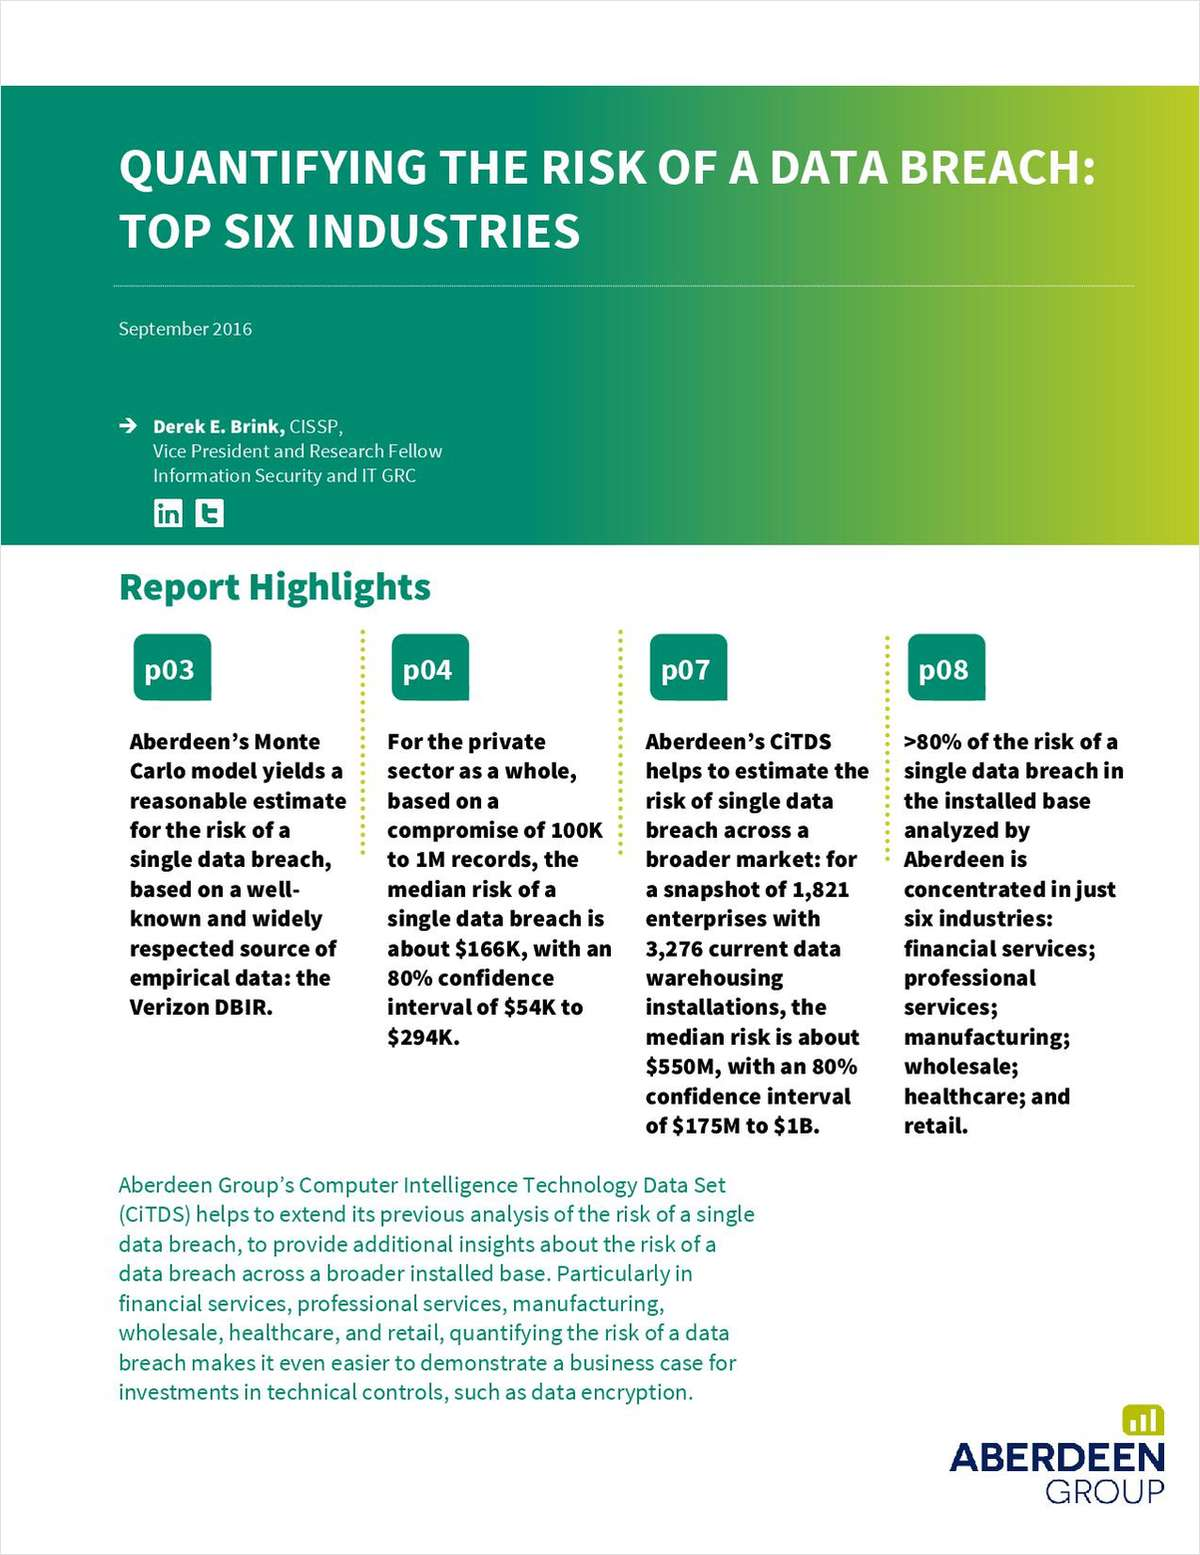 Quantifying the Risk of a Data Breach: Top Six Industries